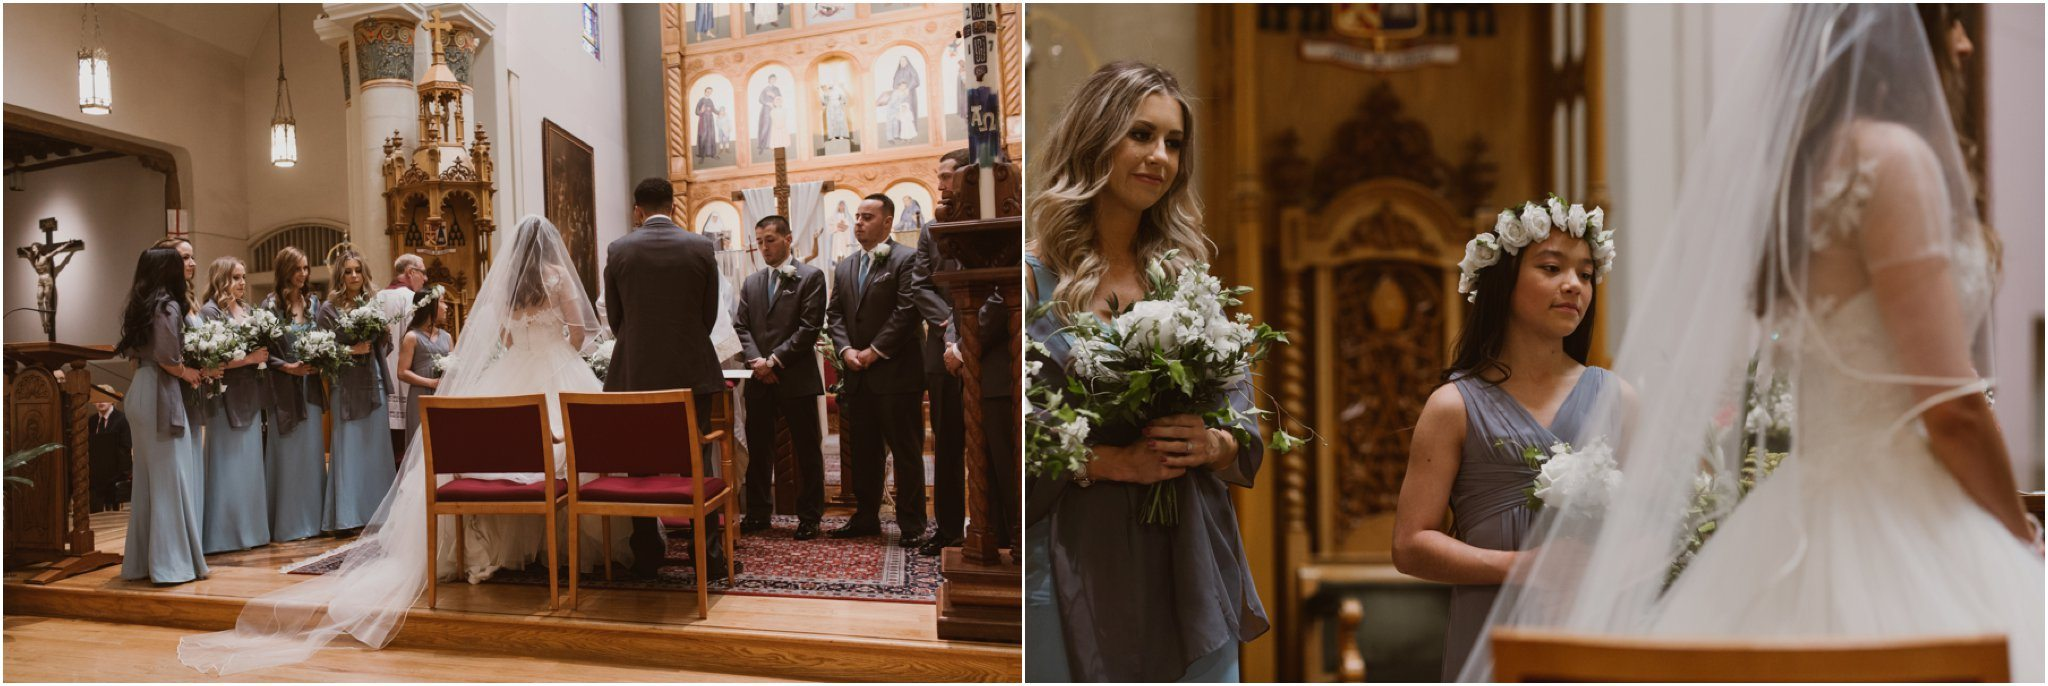 14Blue Rose Photography_ Albuquerque_ Santa Fe_ New Mexico wedding photographers